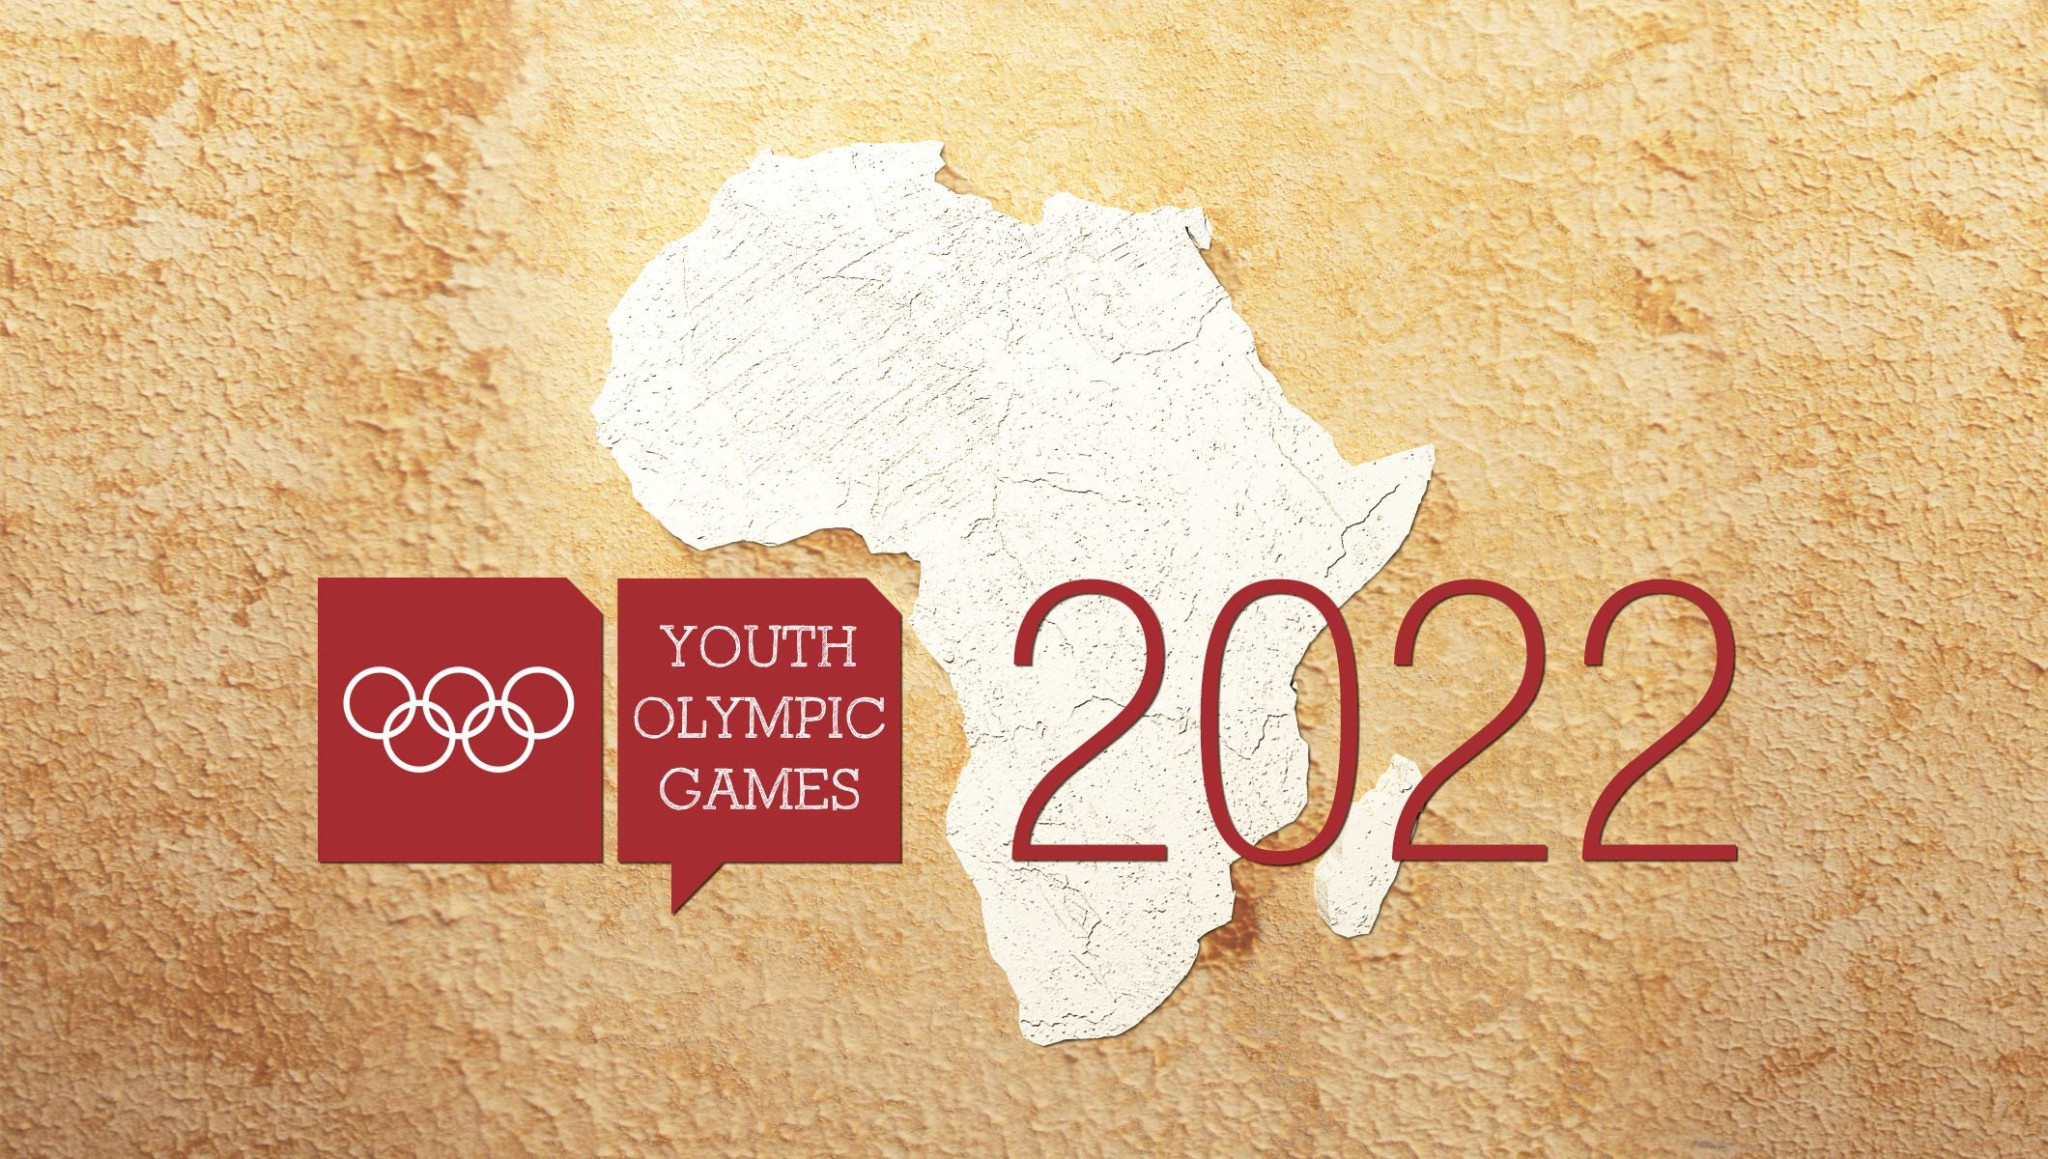 Tunisia bid for 2022 Youth Olympic Games reinstated after Government claim Israeli athletes welcome